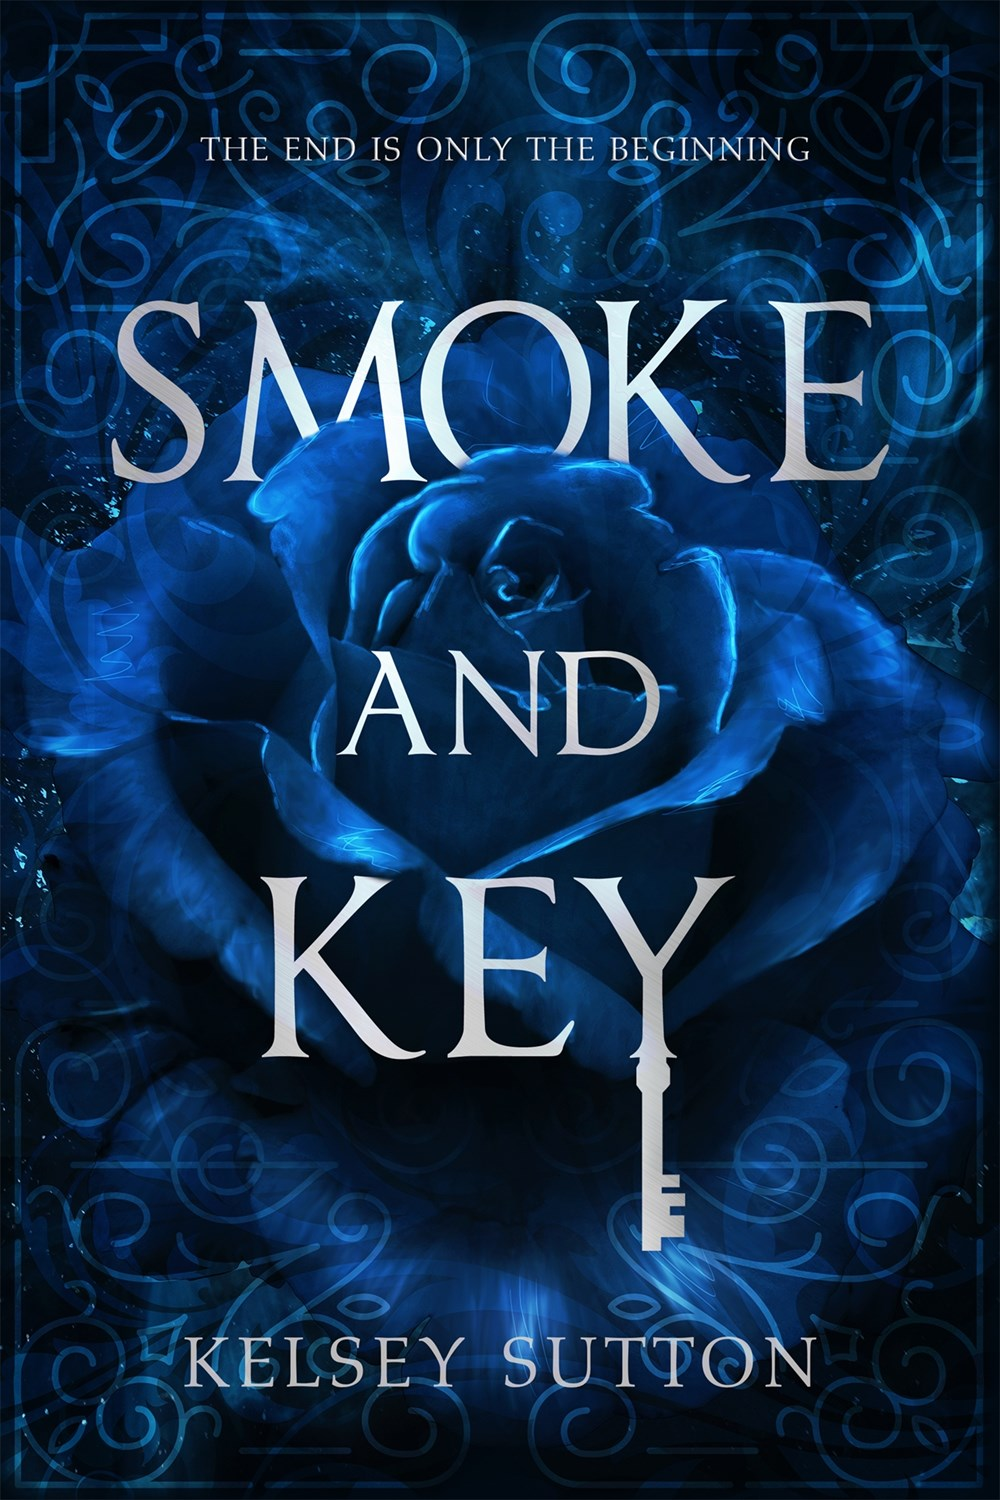 Smoke and Key.by Kelsey Sutton Book Cover